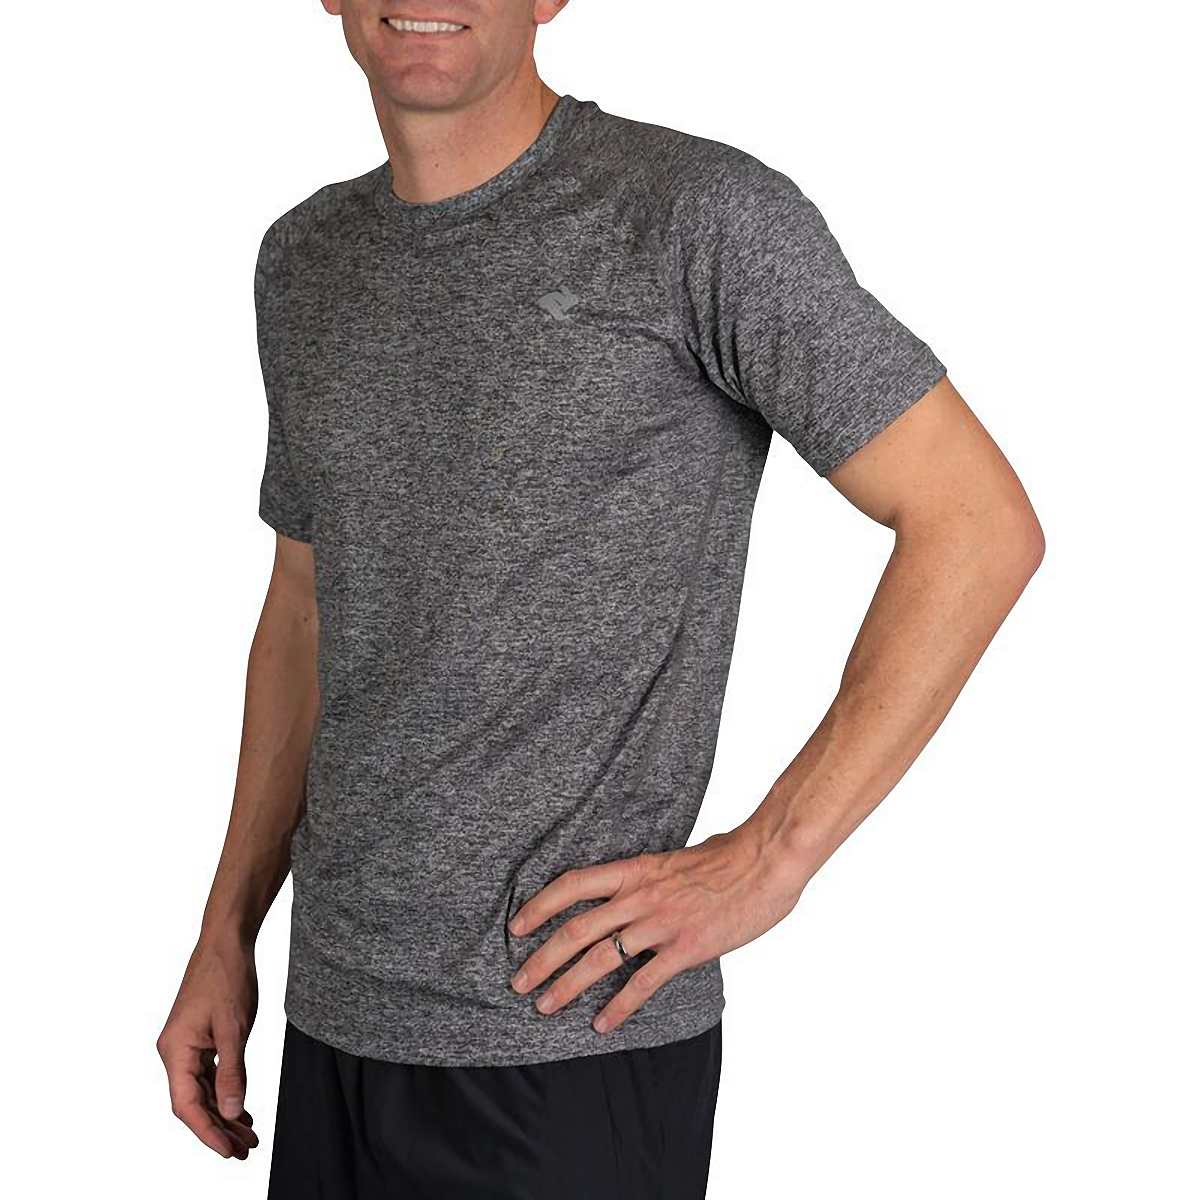 Men's Rabbit EZ Short Sleeve Tee - Color: Charcoal Heather - Size: XS, Charcoal Heather, large, image 3